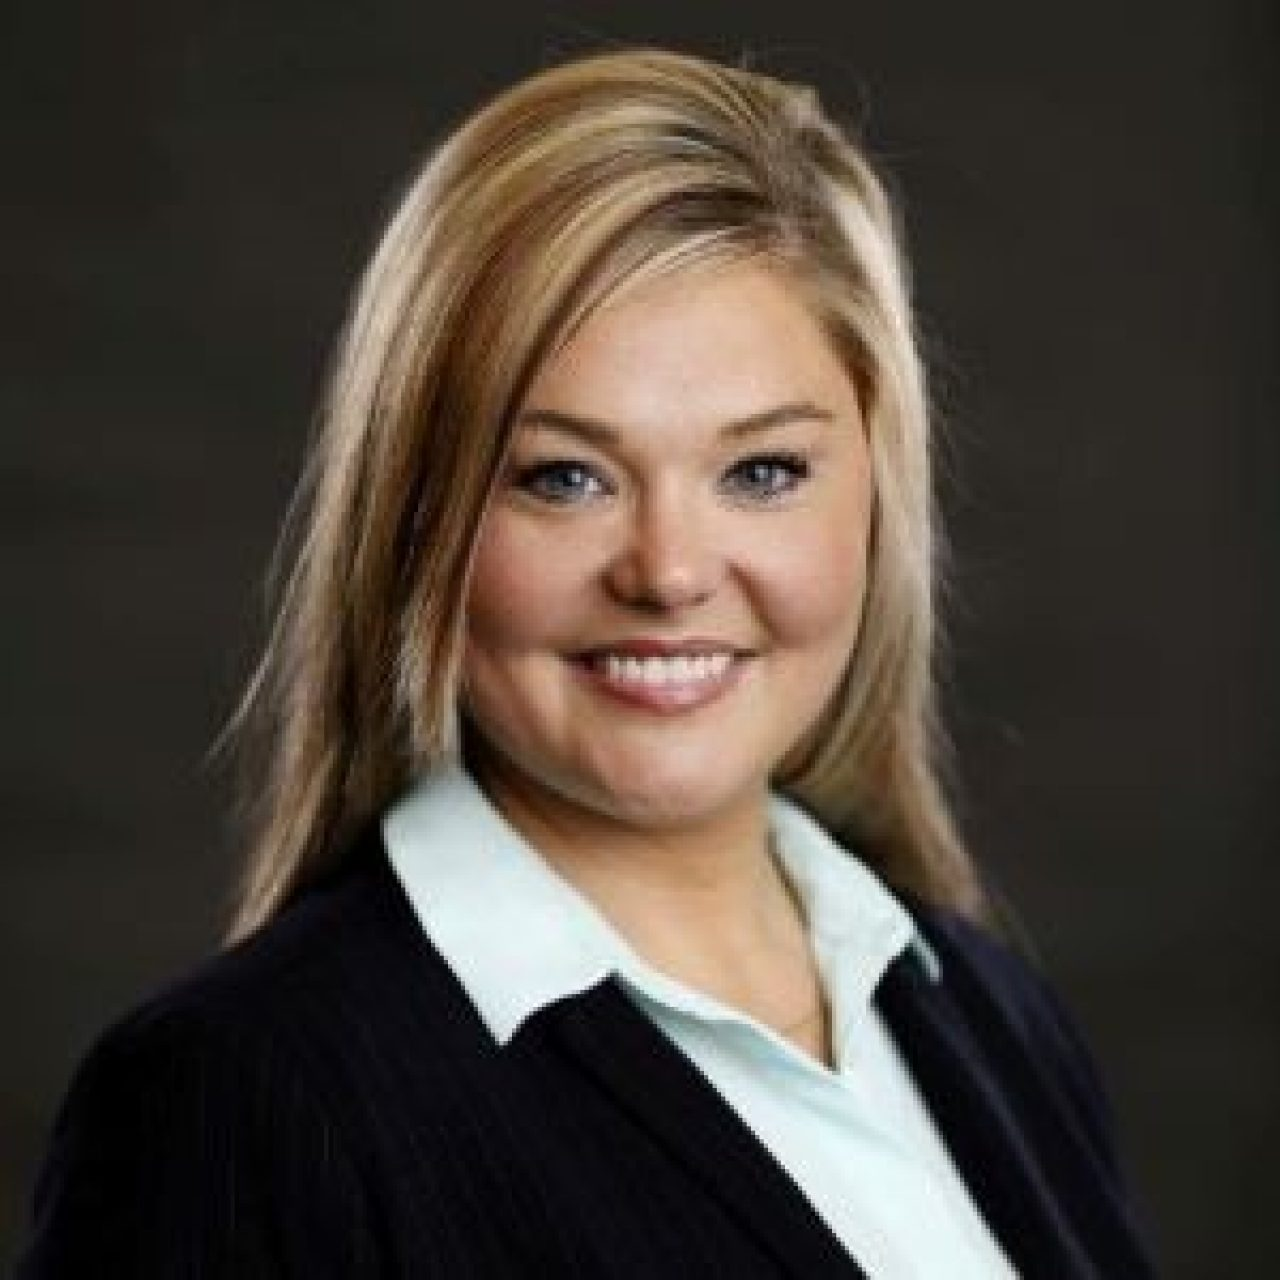 Katie Johnson: Healthcare Vertical Account Manager